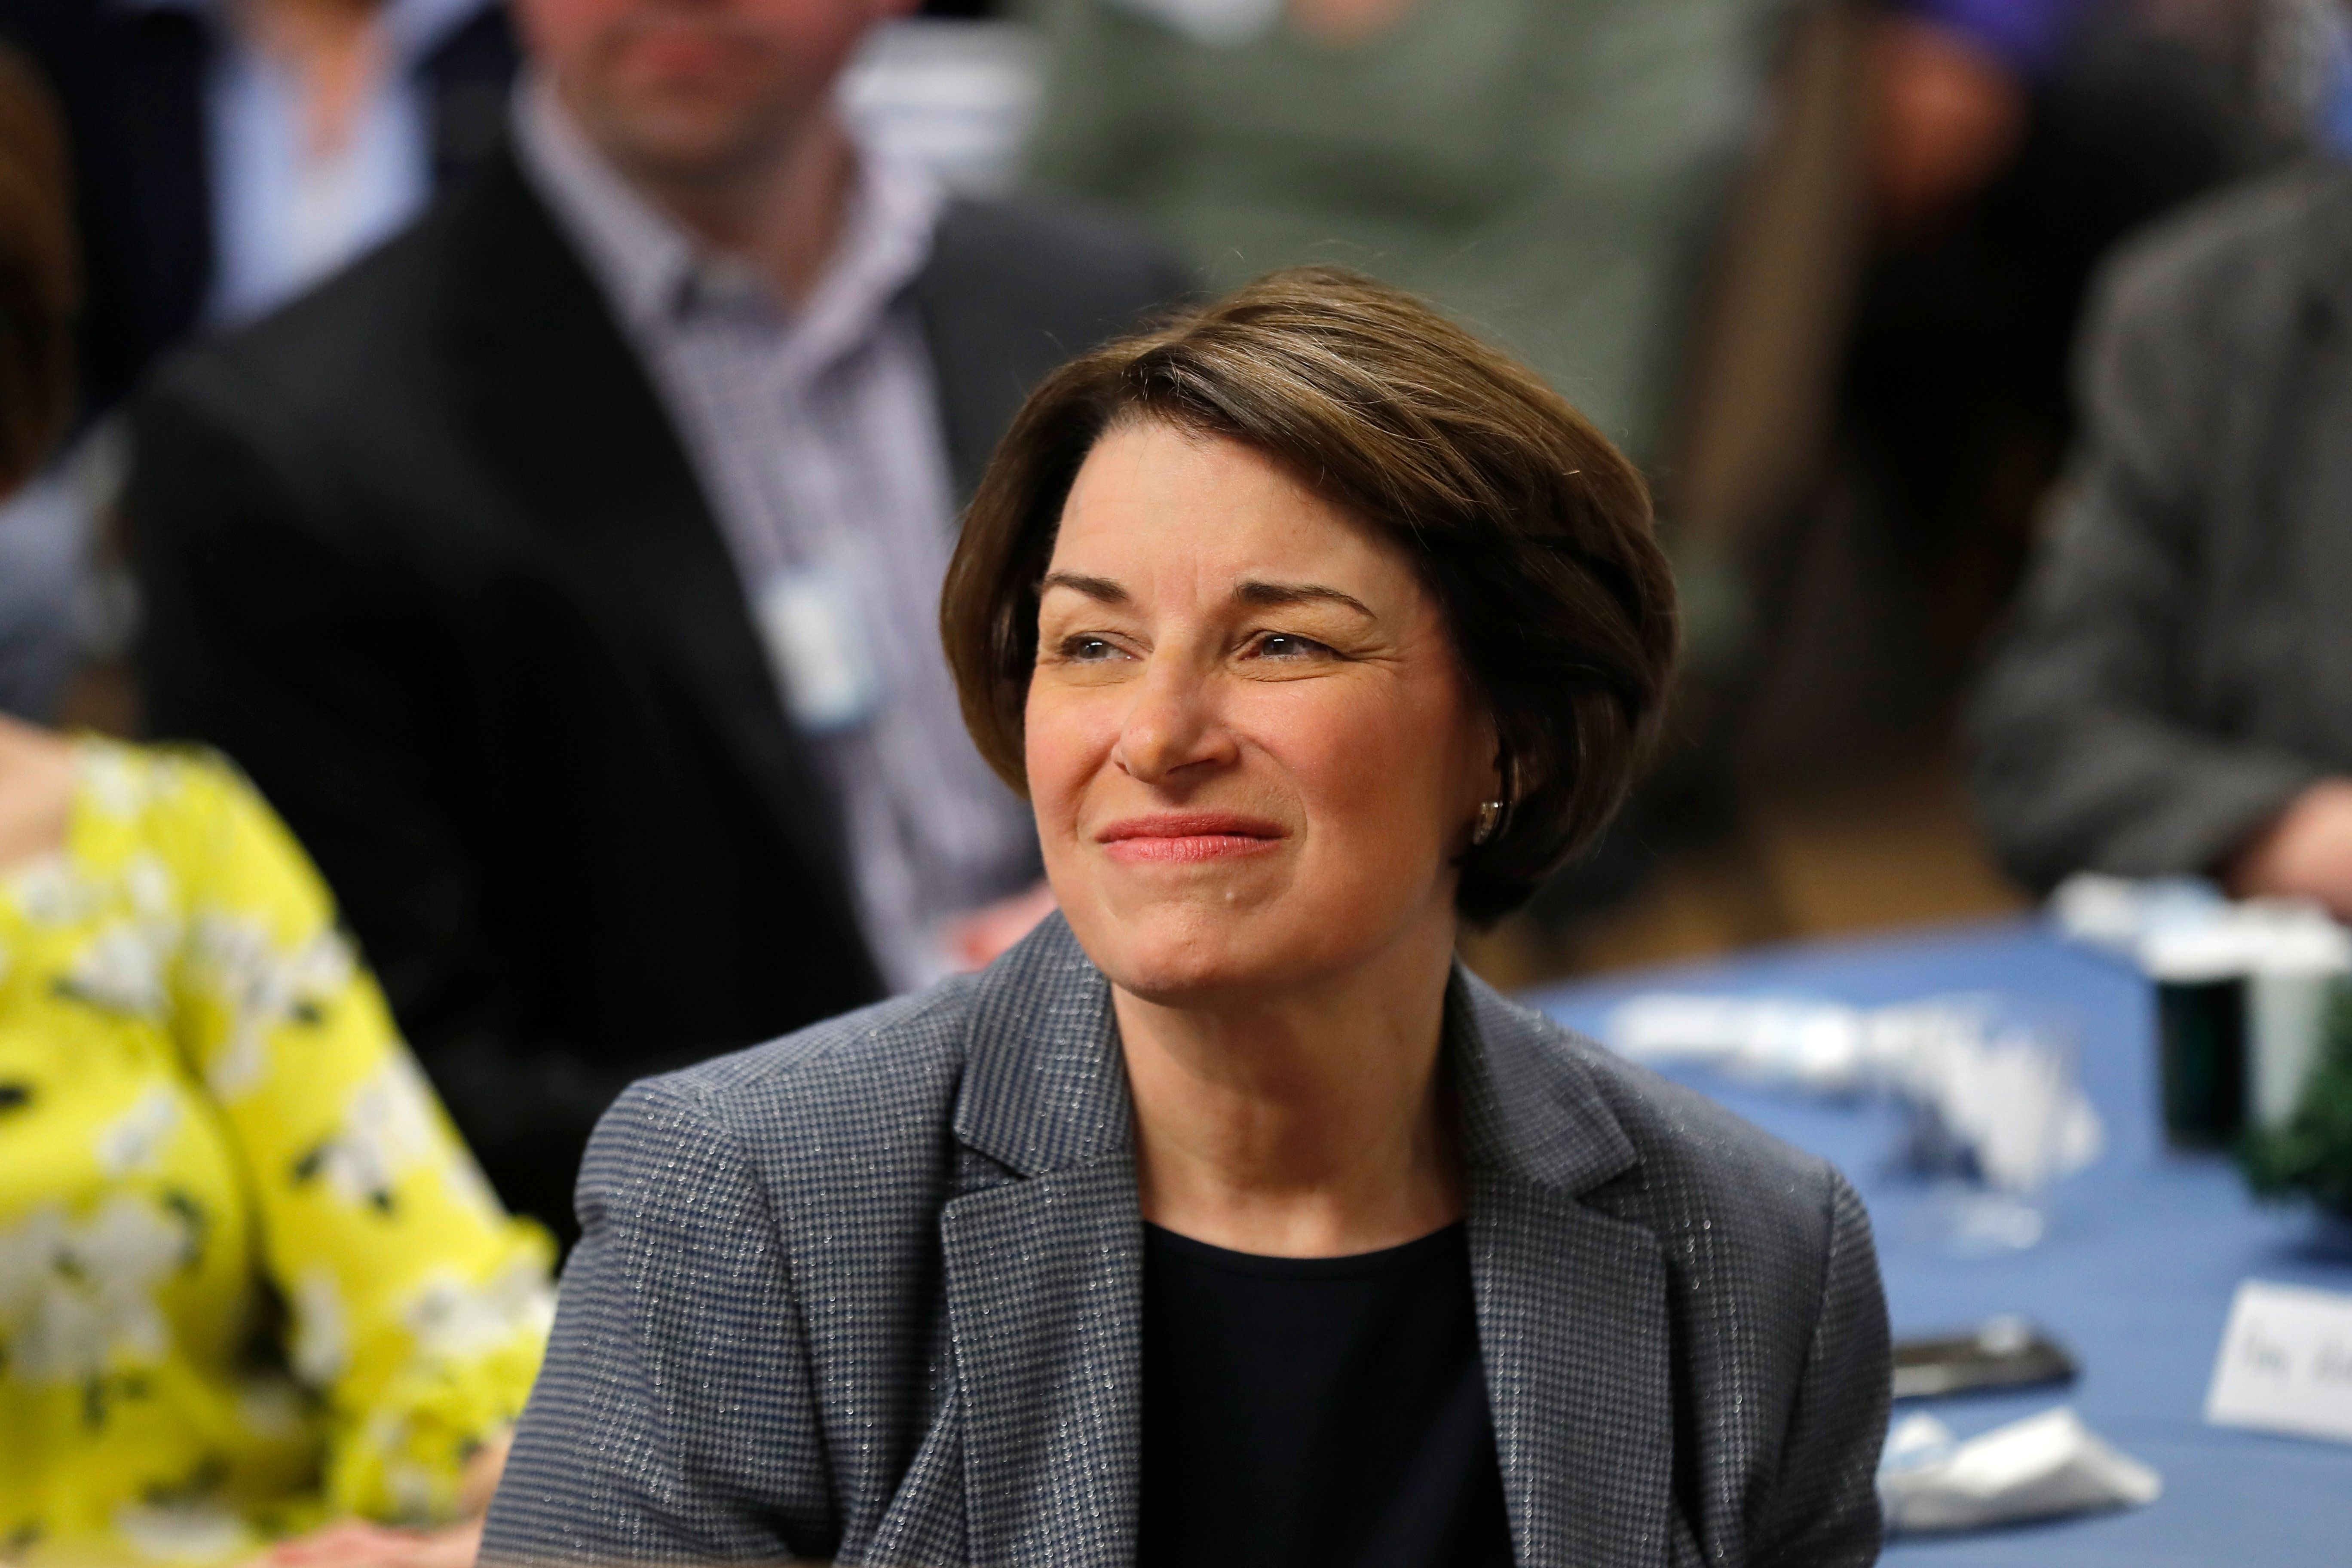 2020 Democratic presidential candidate Sen. Amy Klobuchar waits to speak at the Ankeny Area Democrats' Winter Banquet, Thursday, Feb. 21, 2019, in Des Moines, Iowa. (AP Photo/Charlie Neibergall)